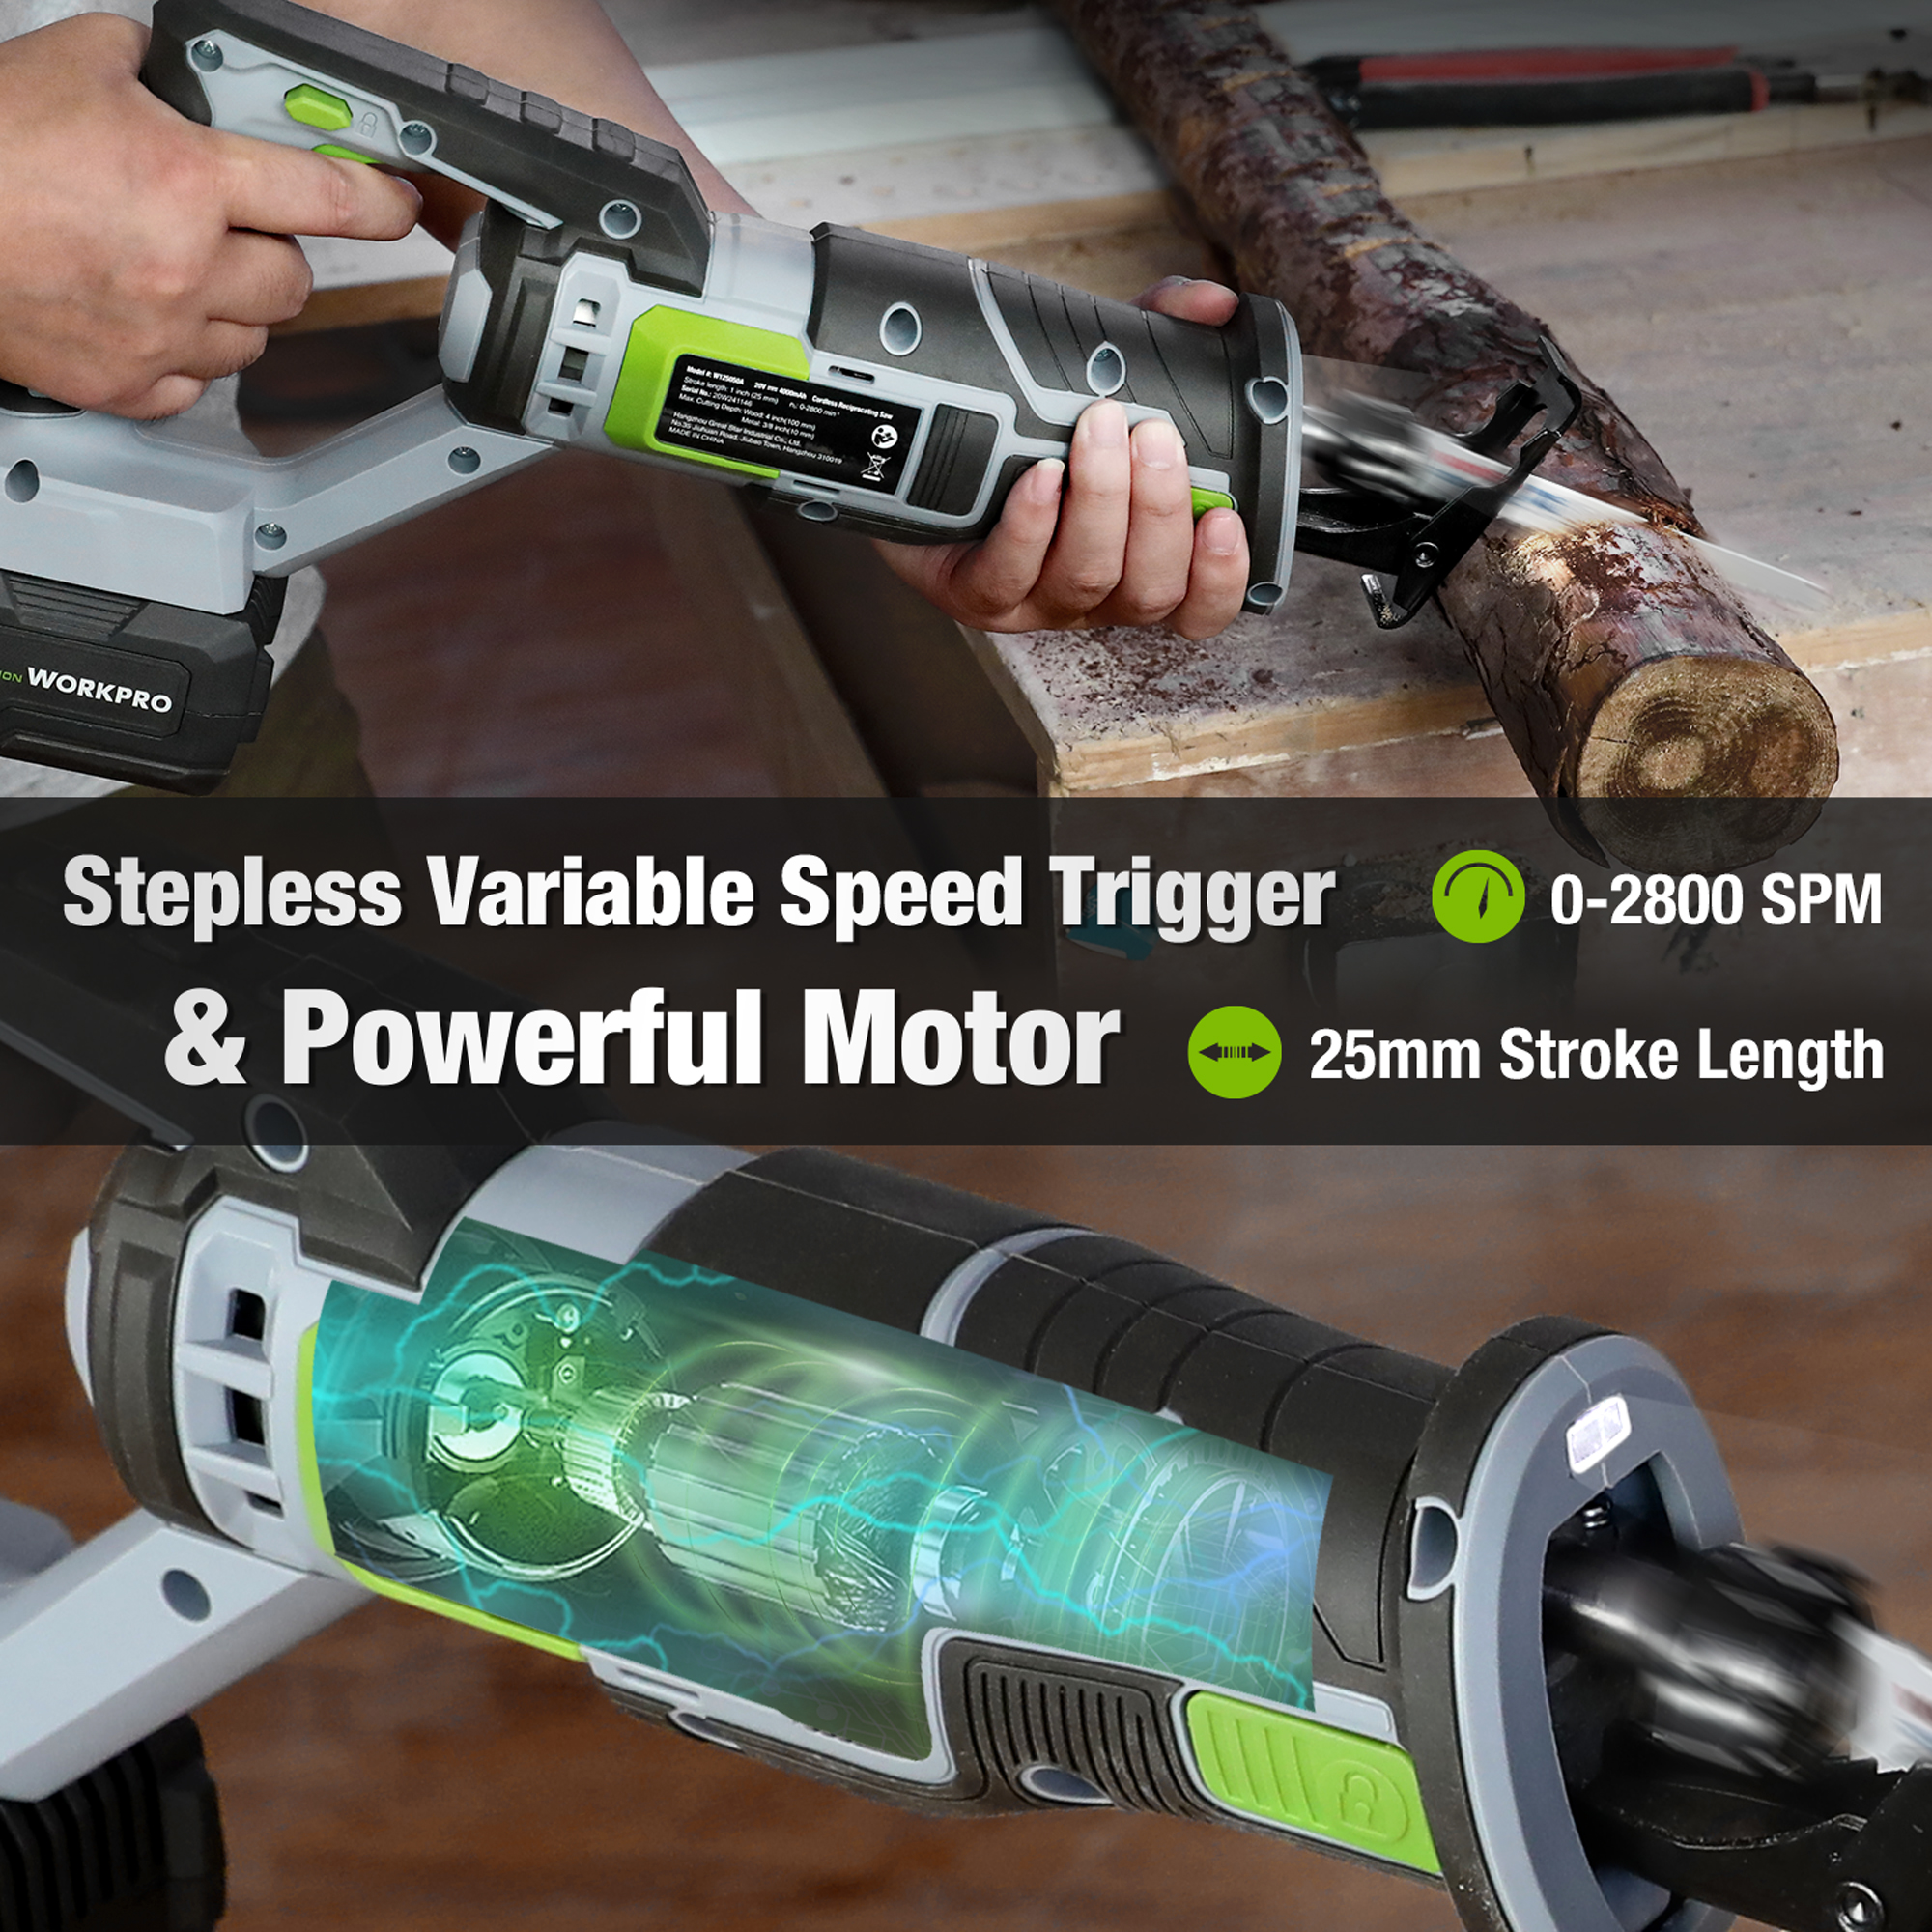 WORKPRO 20V Cordless Reciprocating Saw Stepless Cariable Speed Trigger